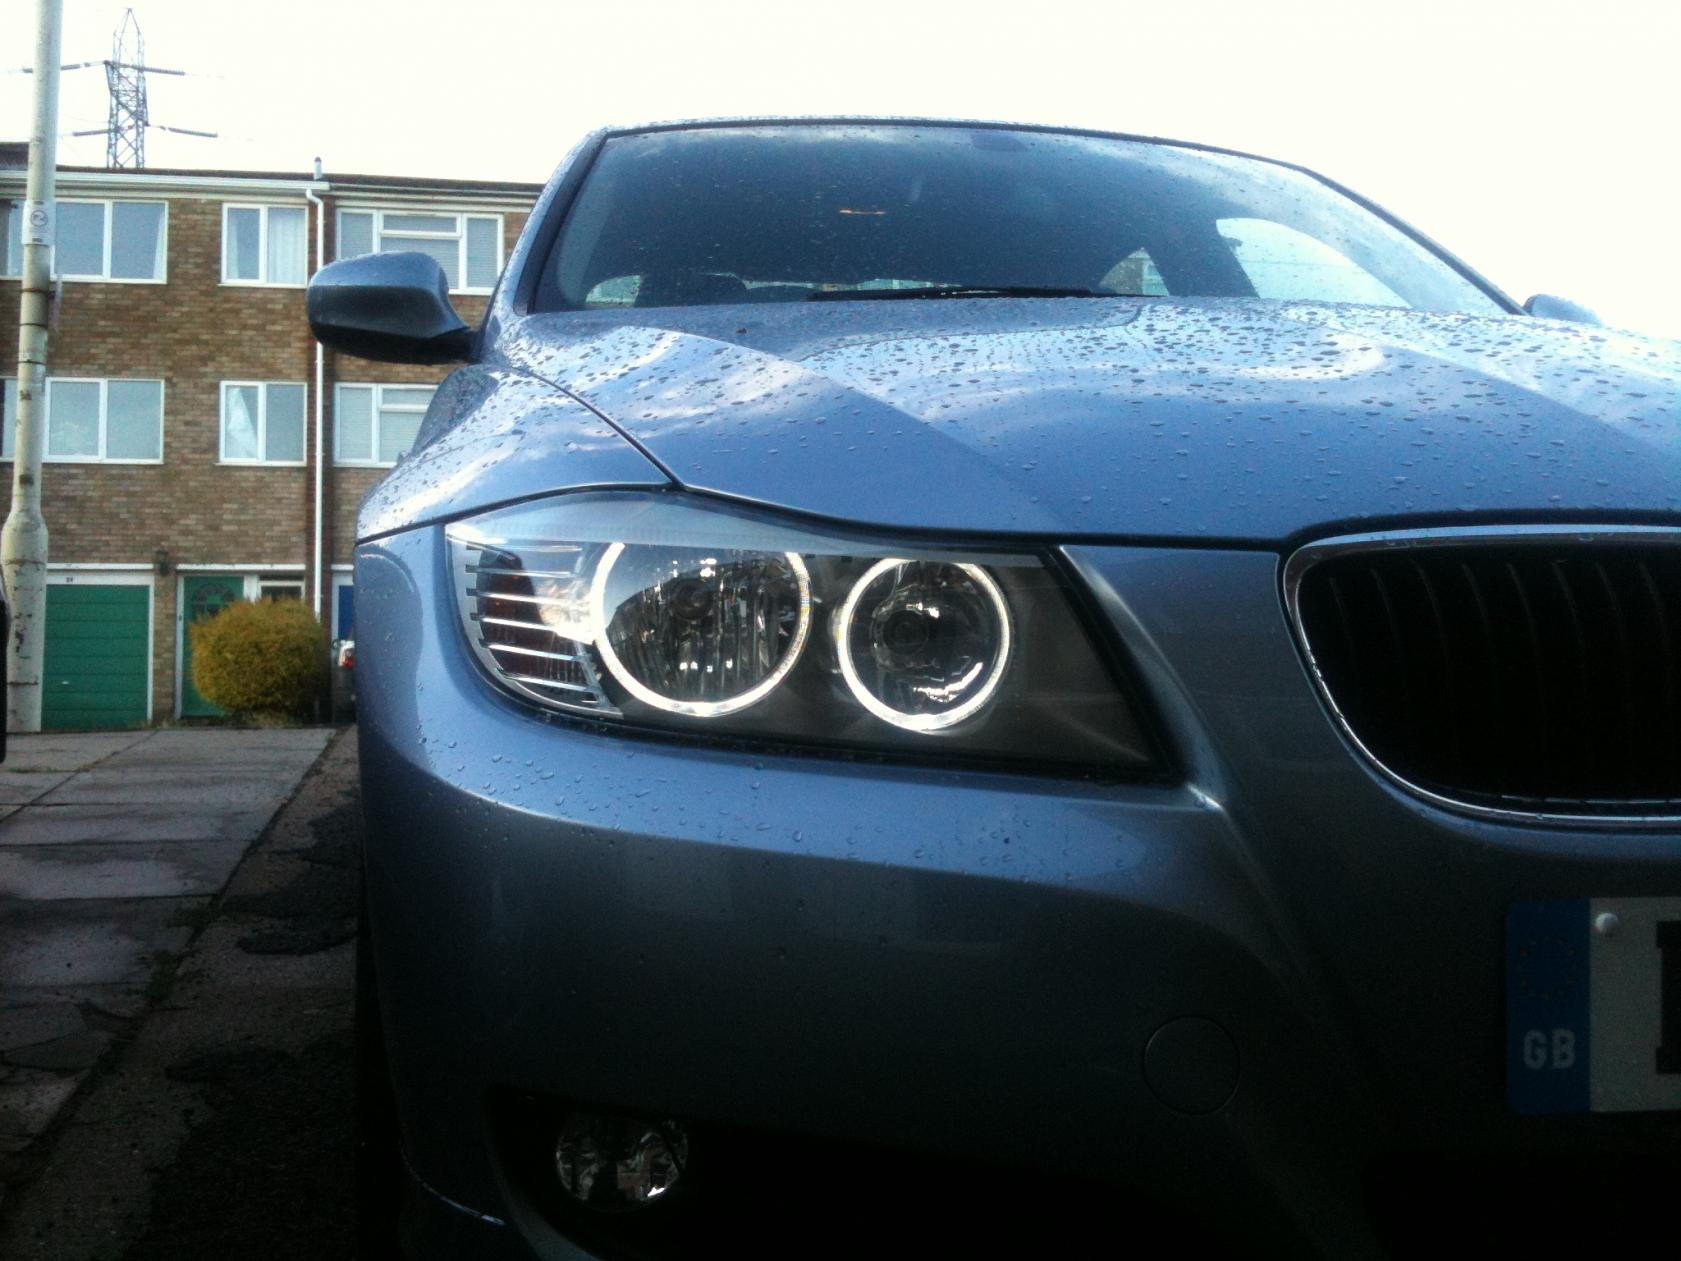 Images of bmw 320d efficientdynamics edition e90 2009 11 - Attached Images